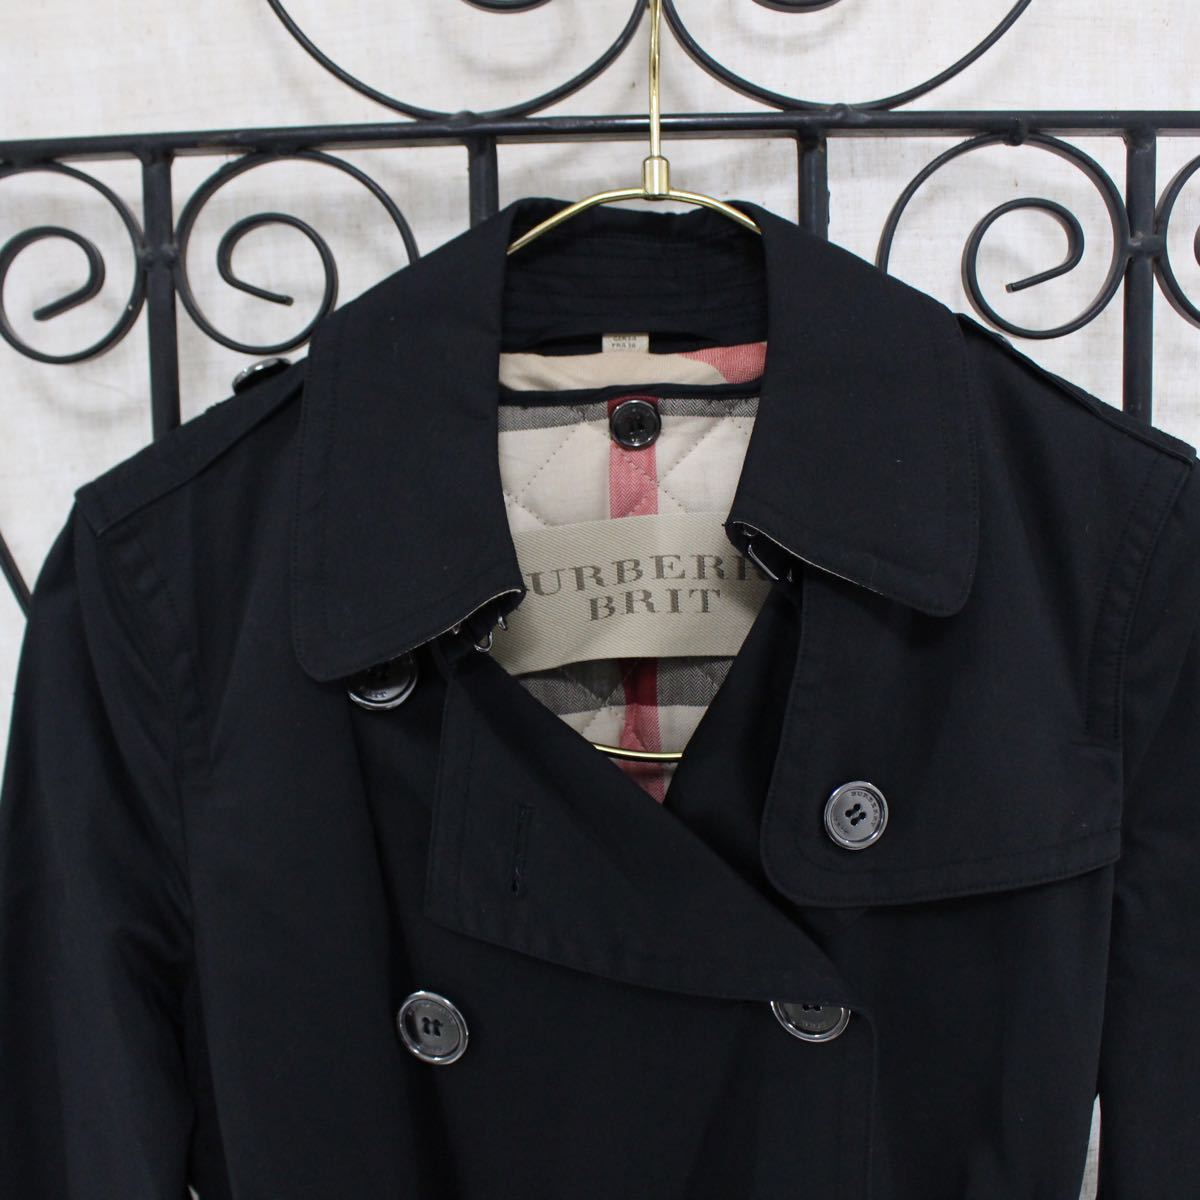 BURBERRY BRIT TRENCH COAT WITH QUILTING LINER MADE IN CHINA/バーバリーブリットキルティングライナー付トレンチコート_画像3